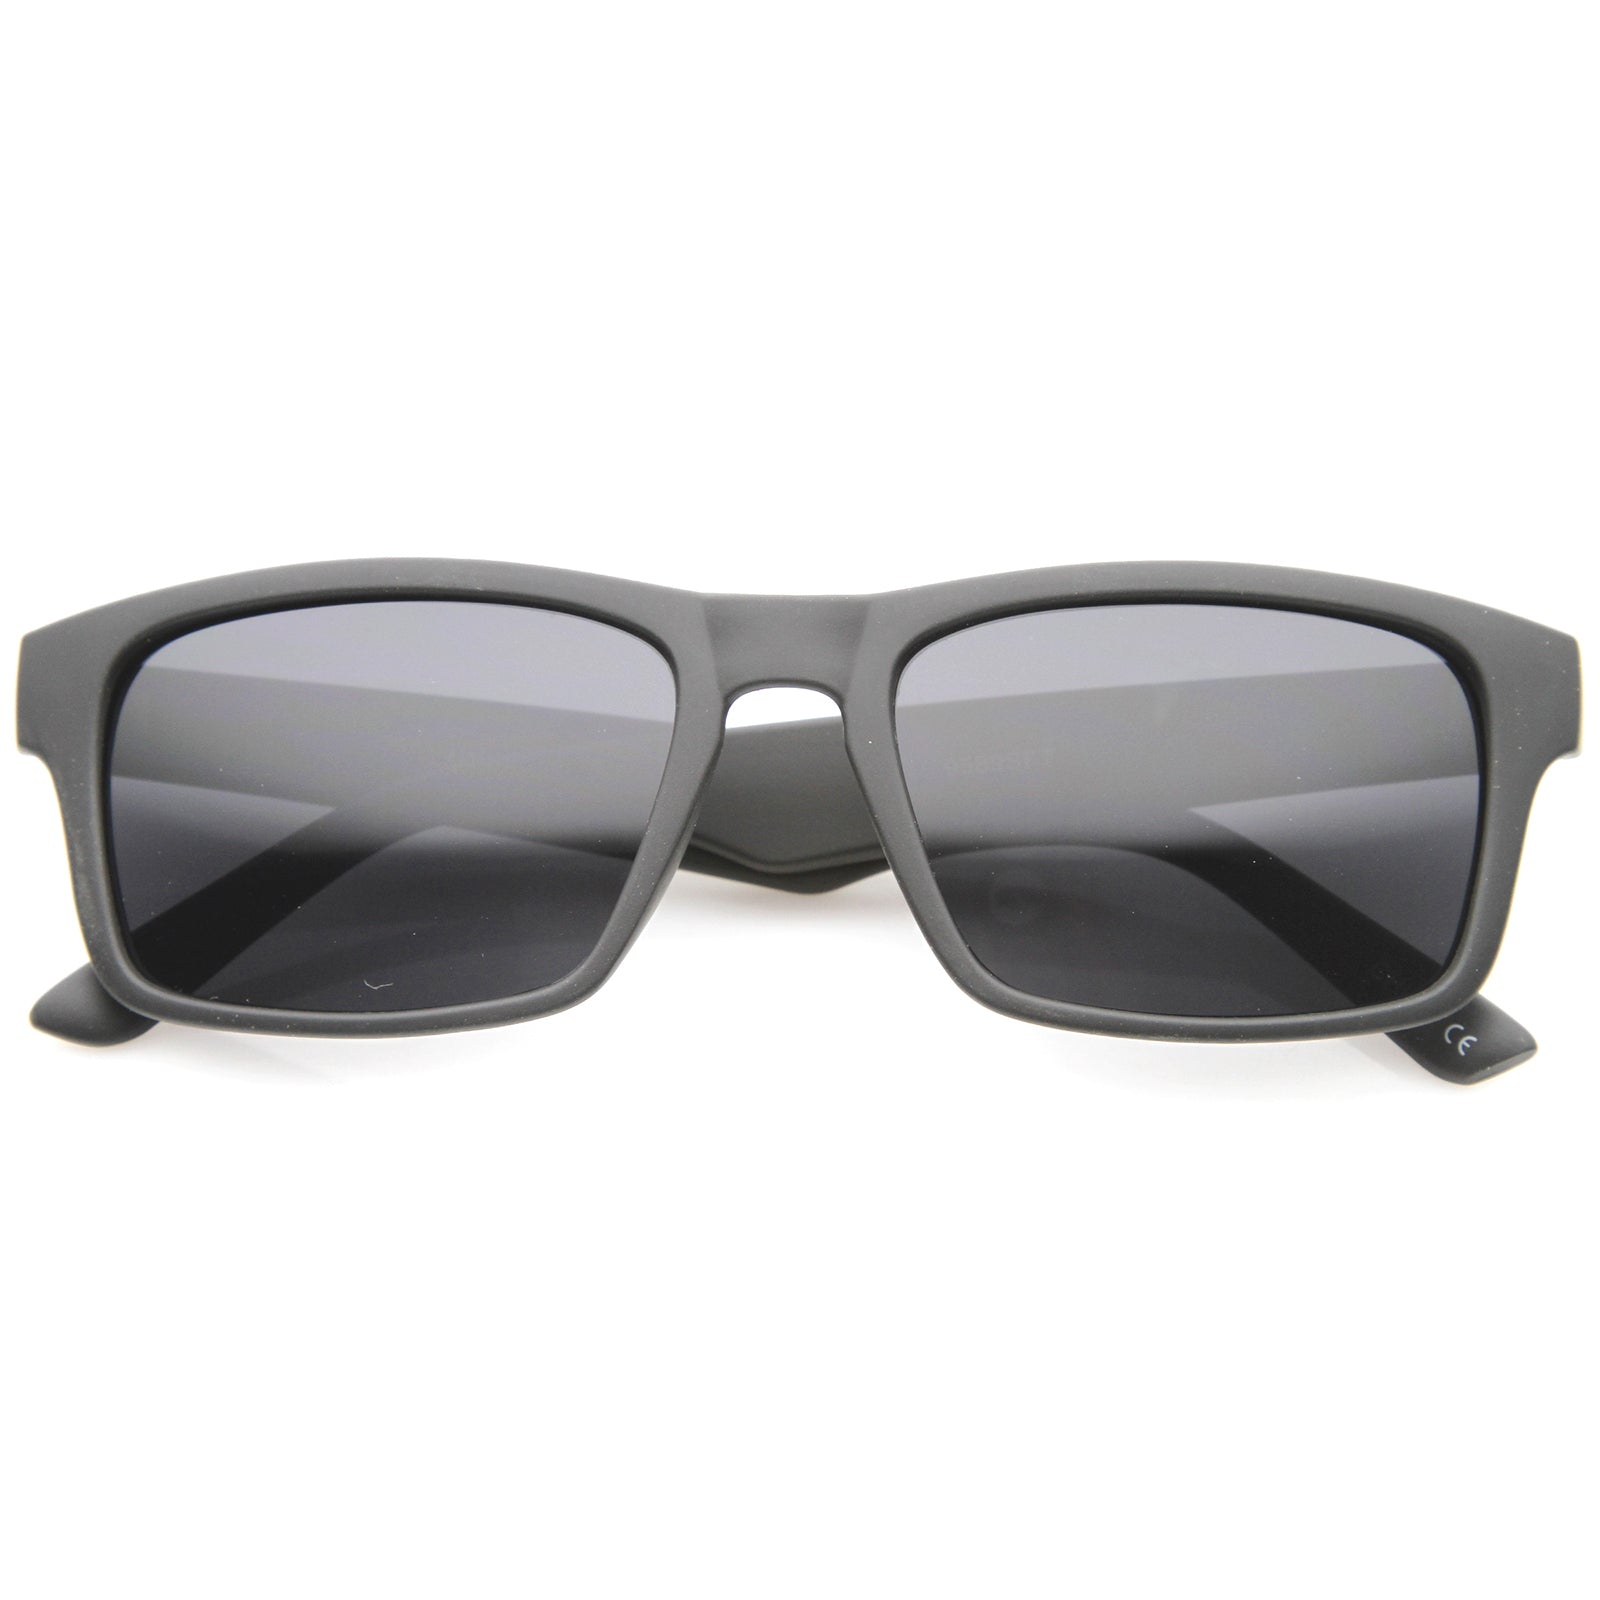 Mens Horn Rimmed Sunglasses With UV400 Protected Composite Lens - sunglass.la - 1